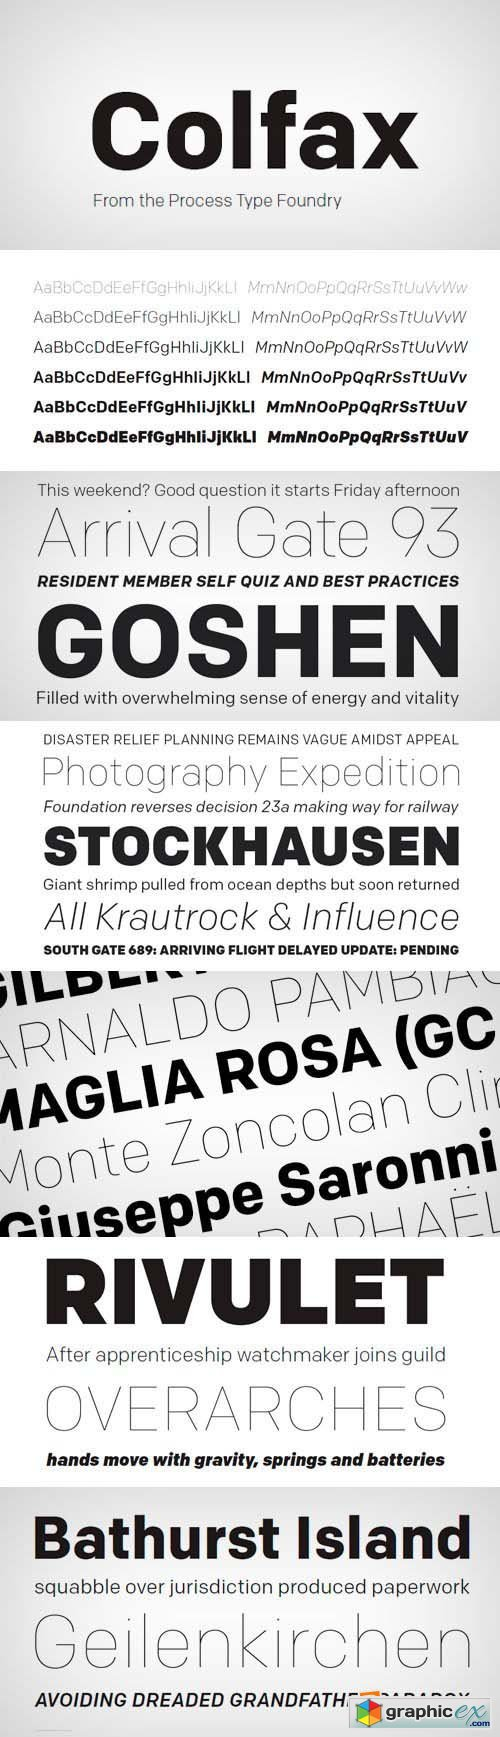 Colfax Font Family - 12 Fonts for $250